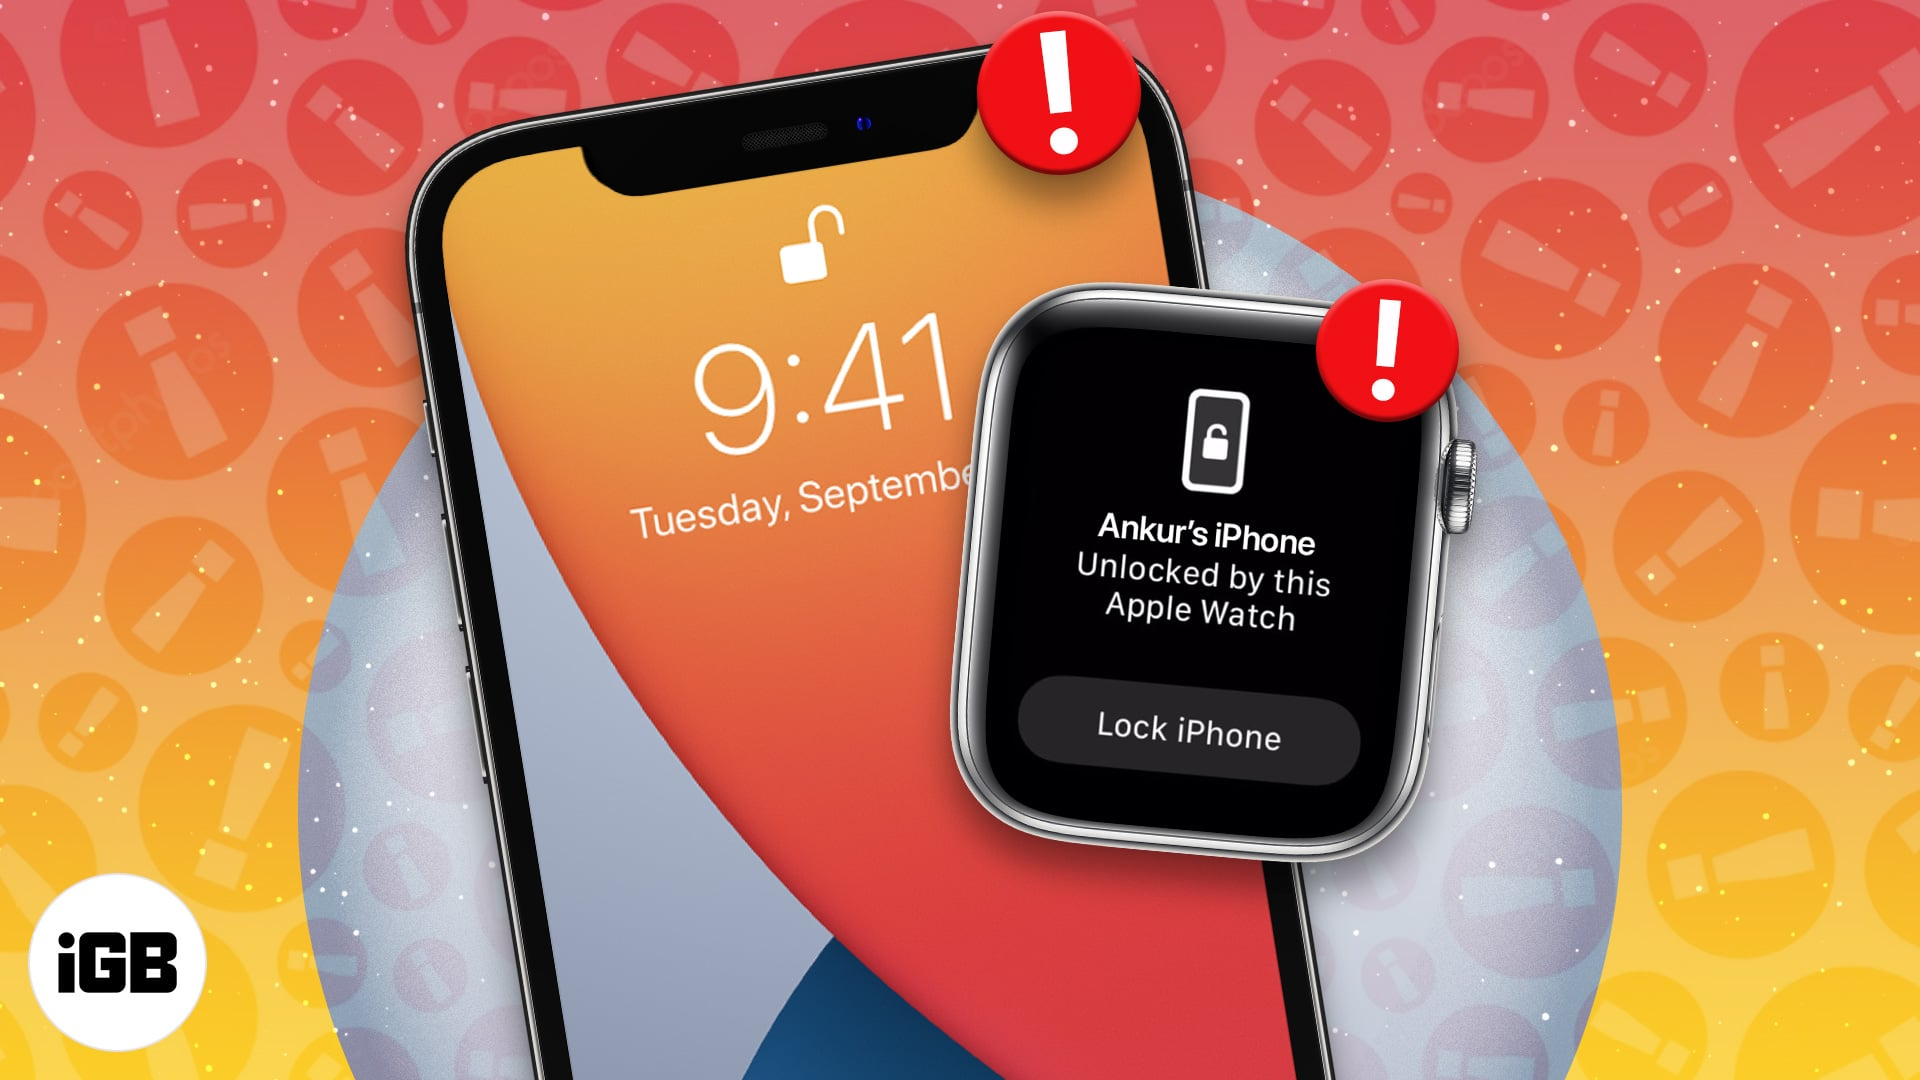 Can't unlock iPhone with Apple Watch